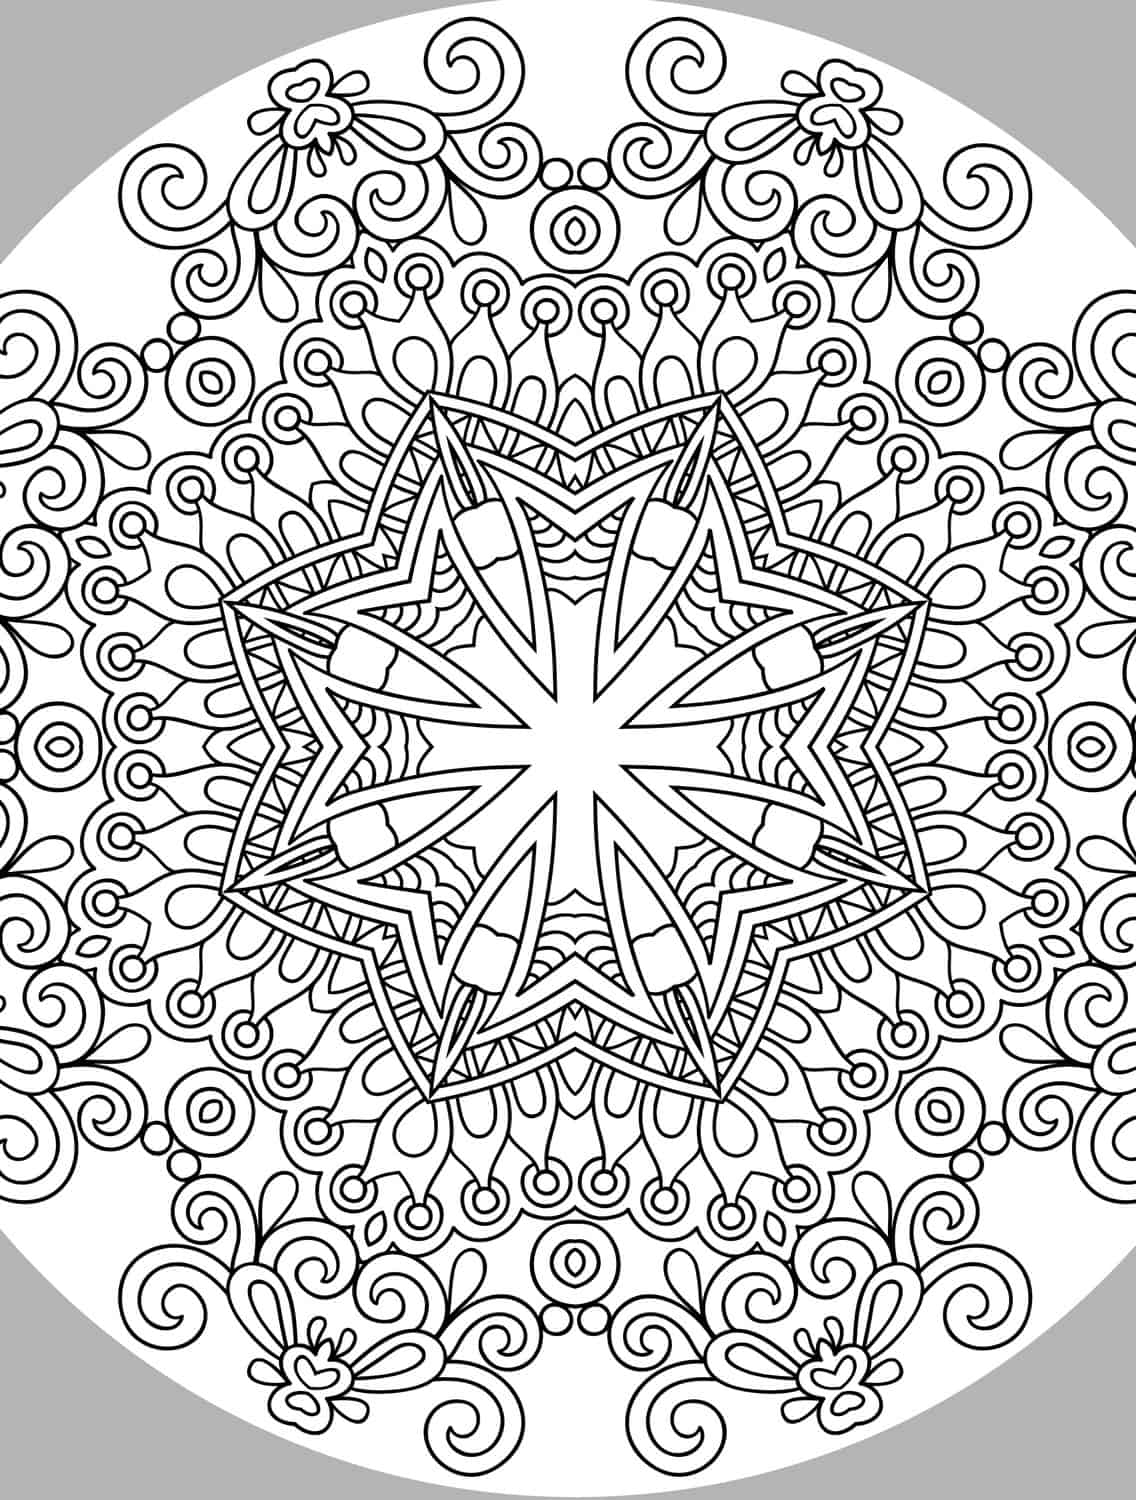 very pretty coloring page for adults small - Adults Coloring Books